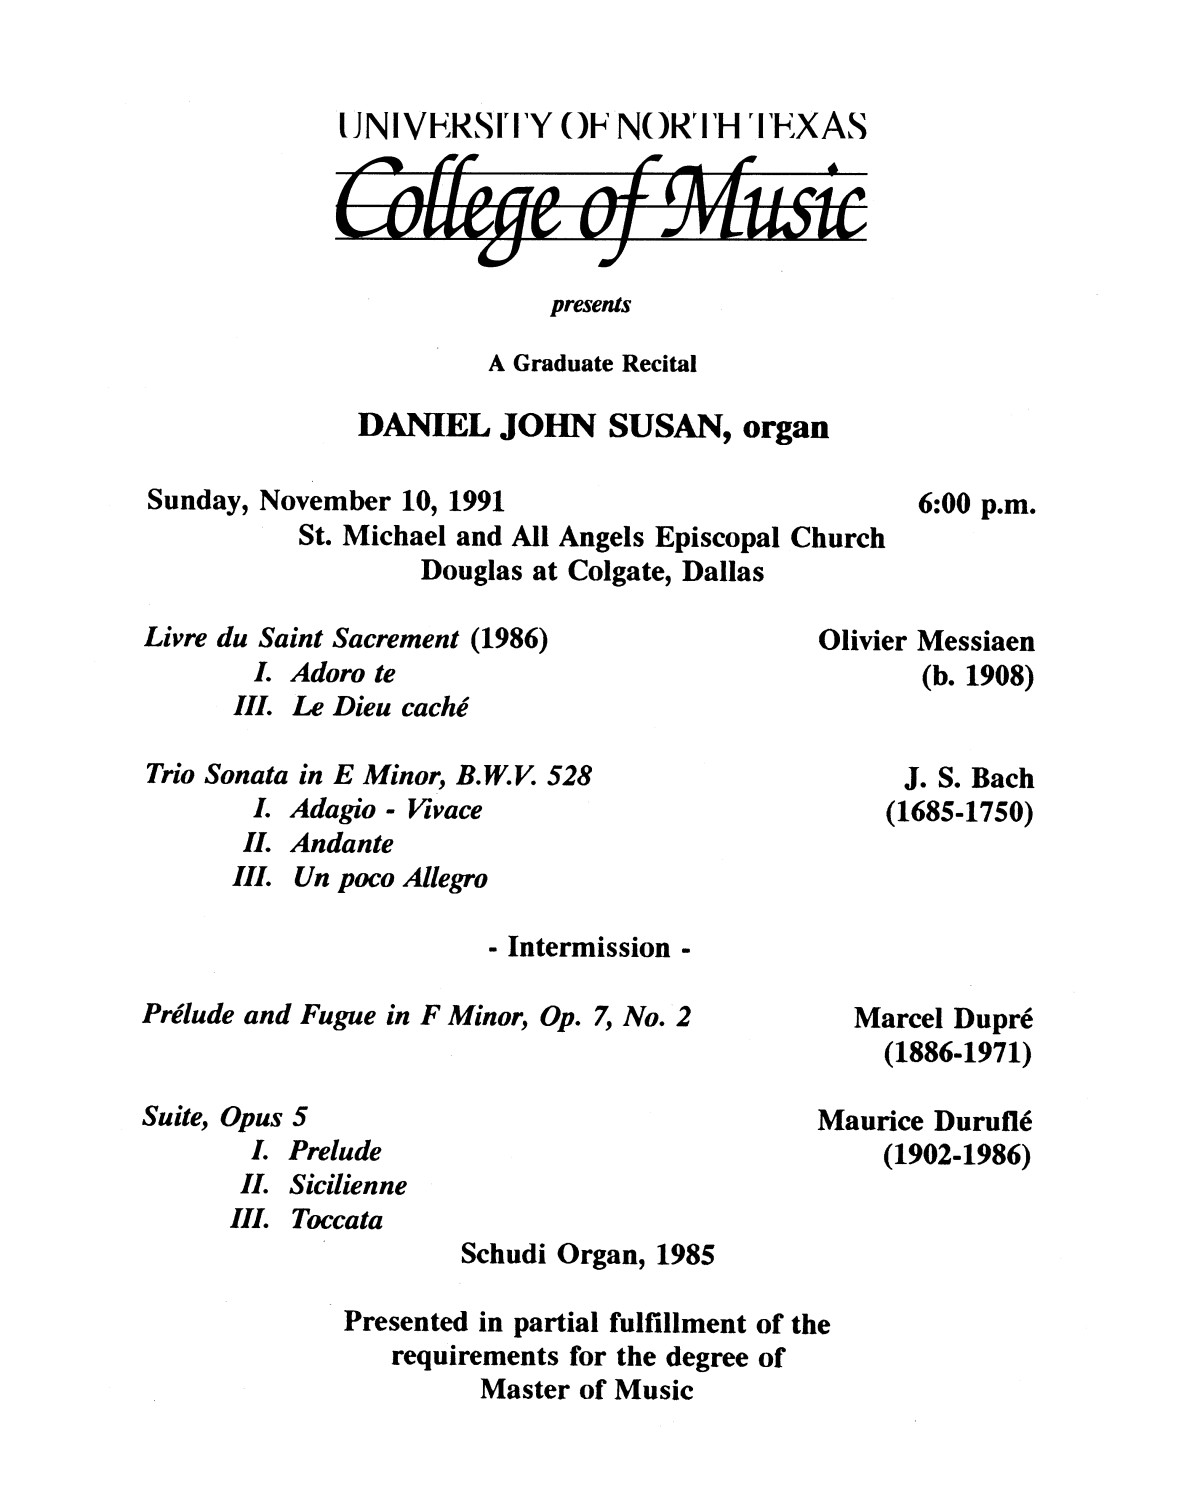 College of Music program book 1991-1992 Student Performances Vol. 2                                                                                                      [Sequence #]: 45 of 310